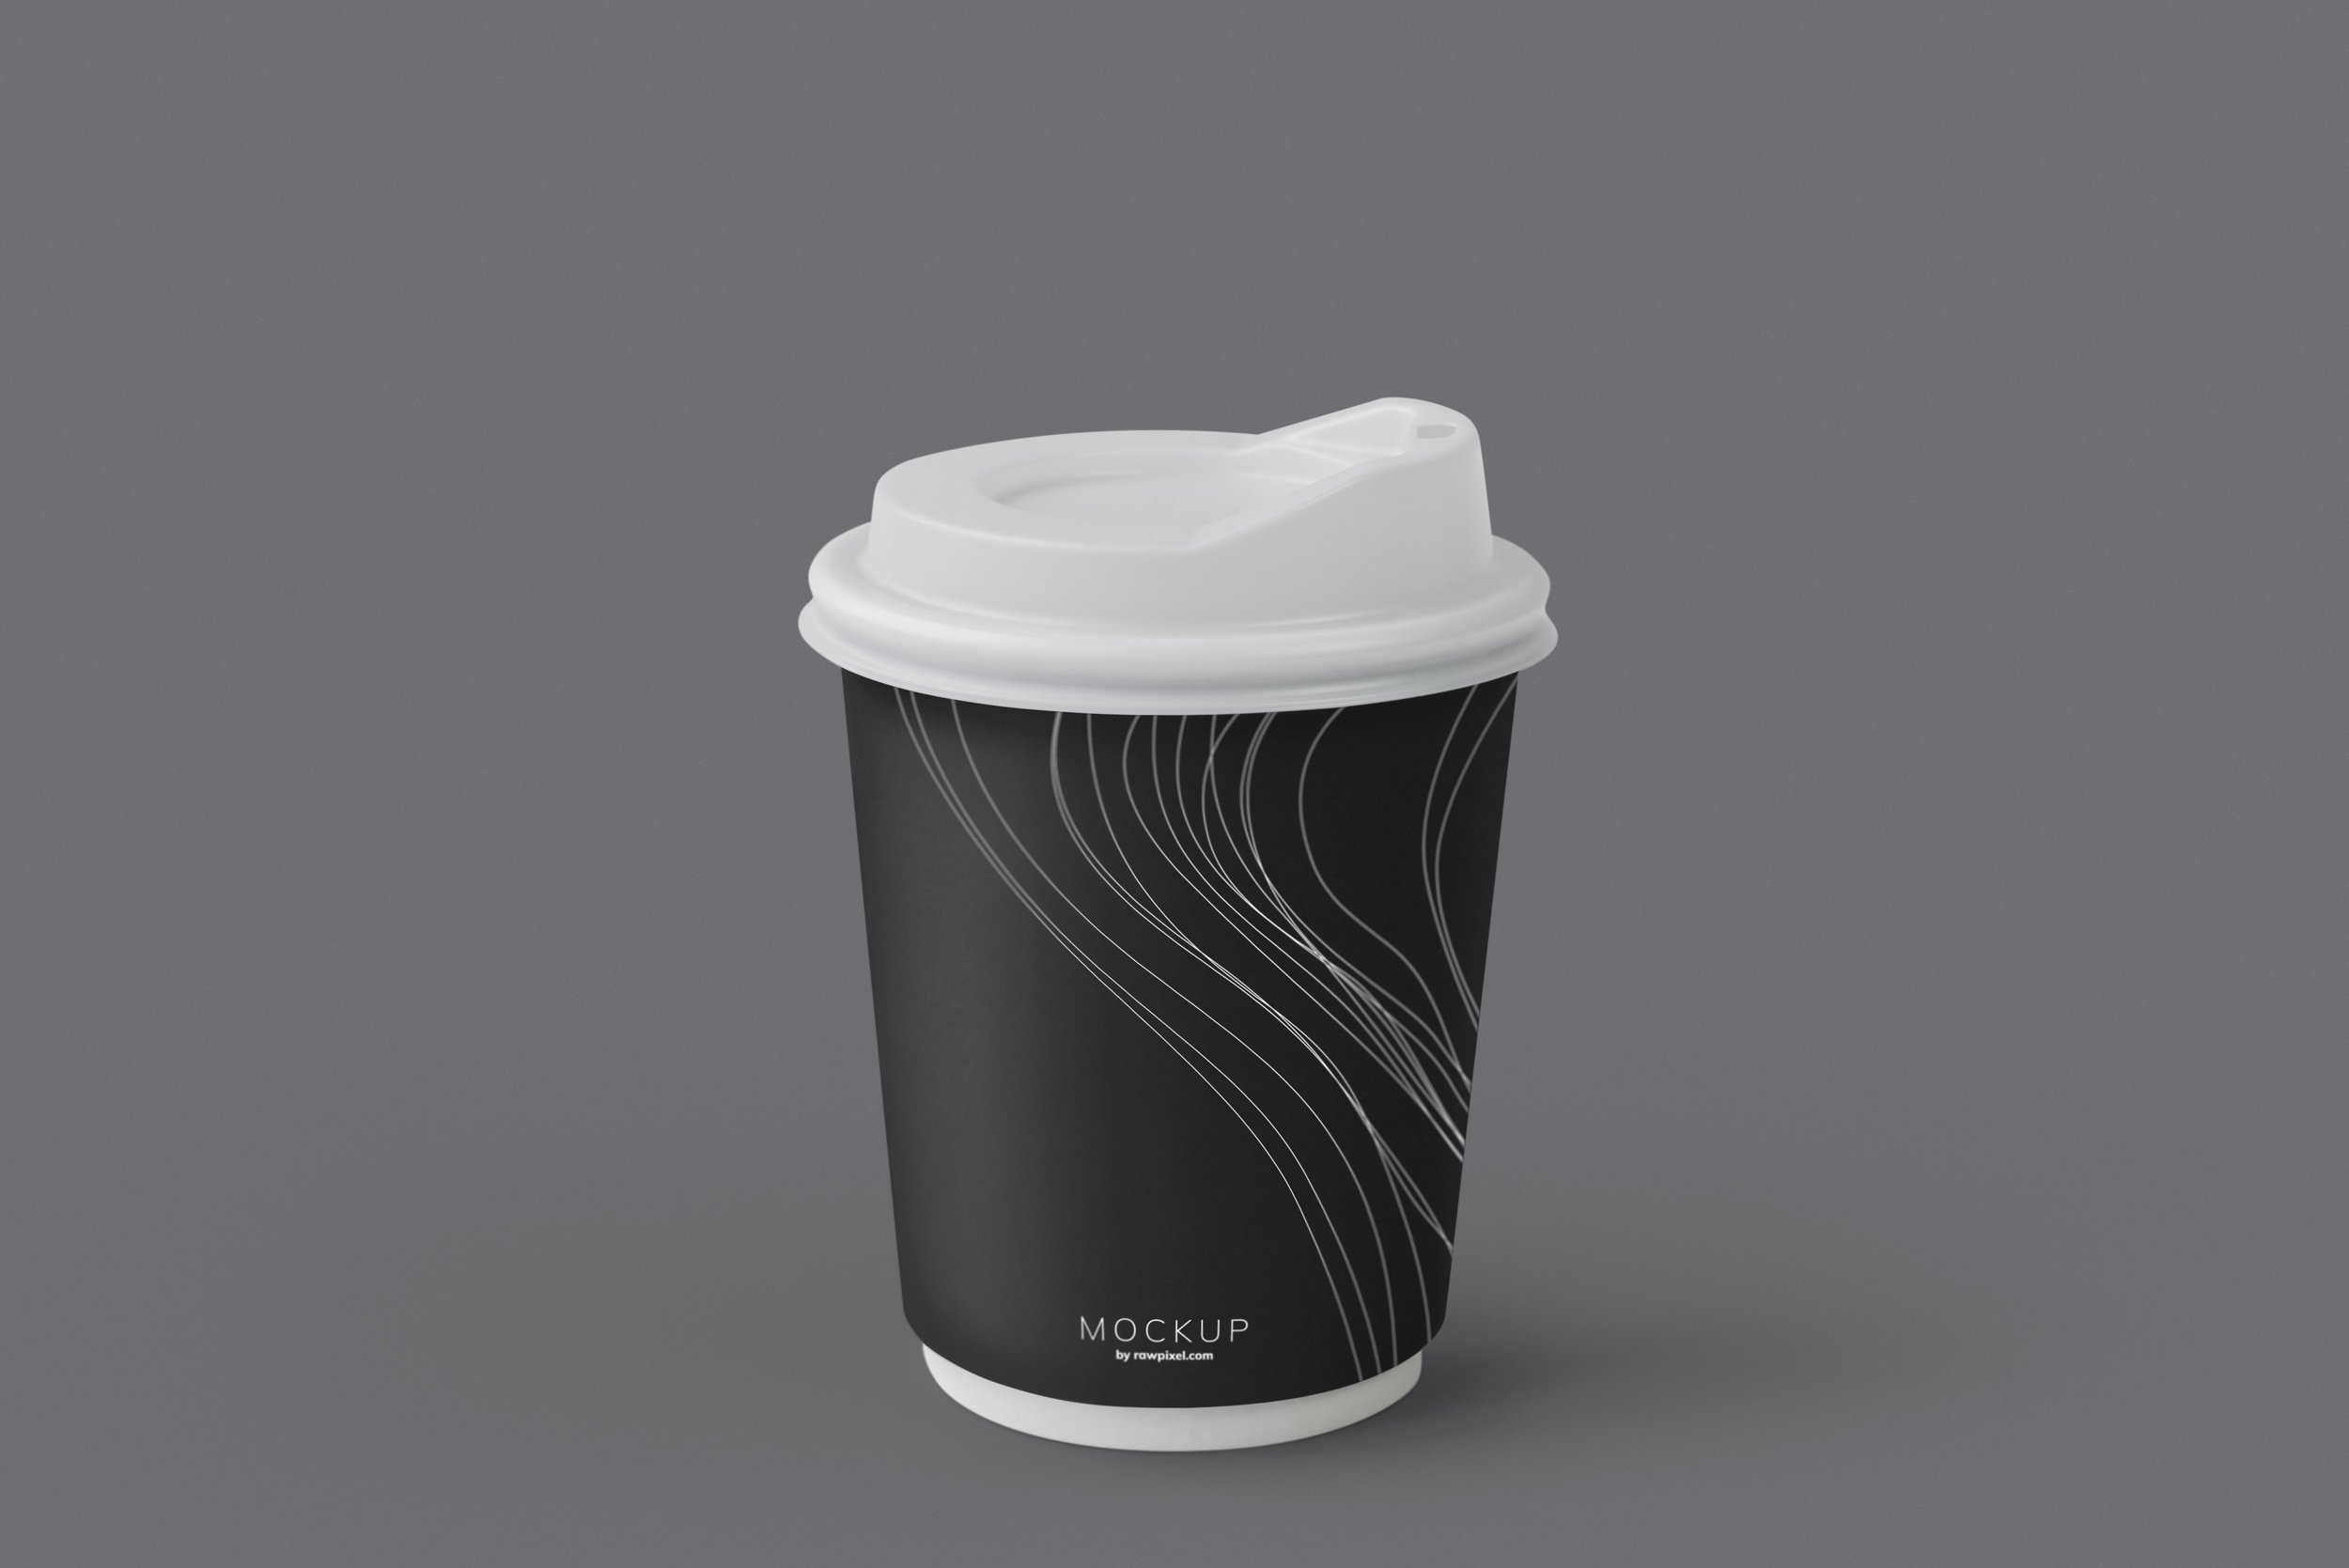 beverage-caffeine-coffee-1537011.jpg